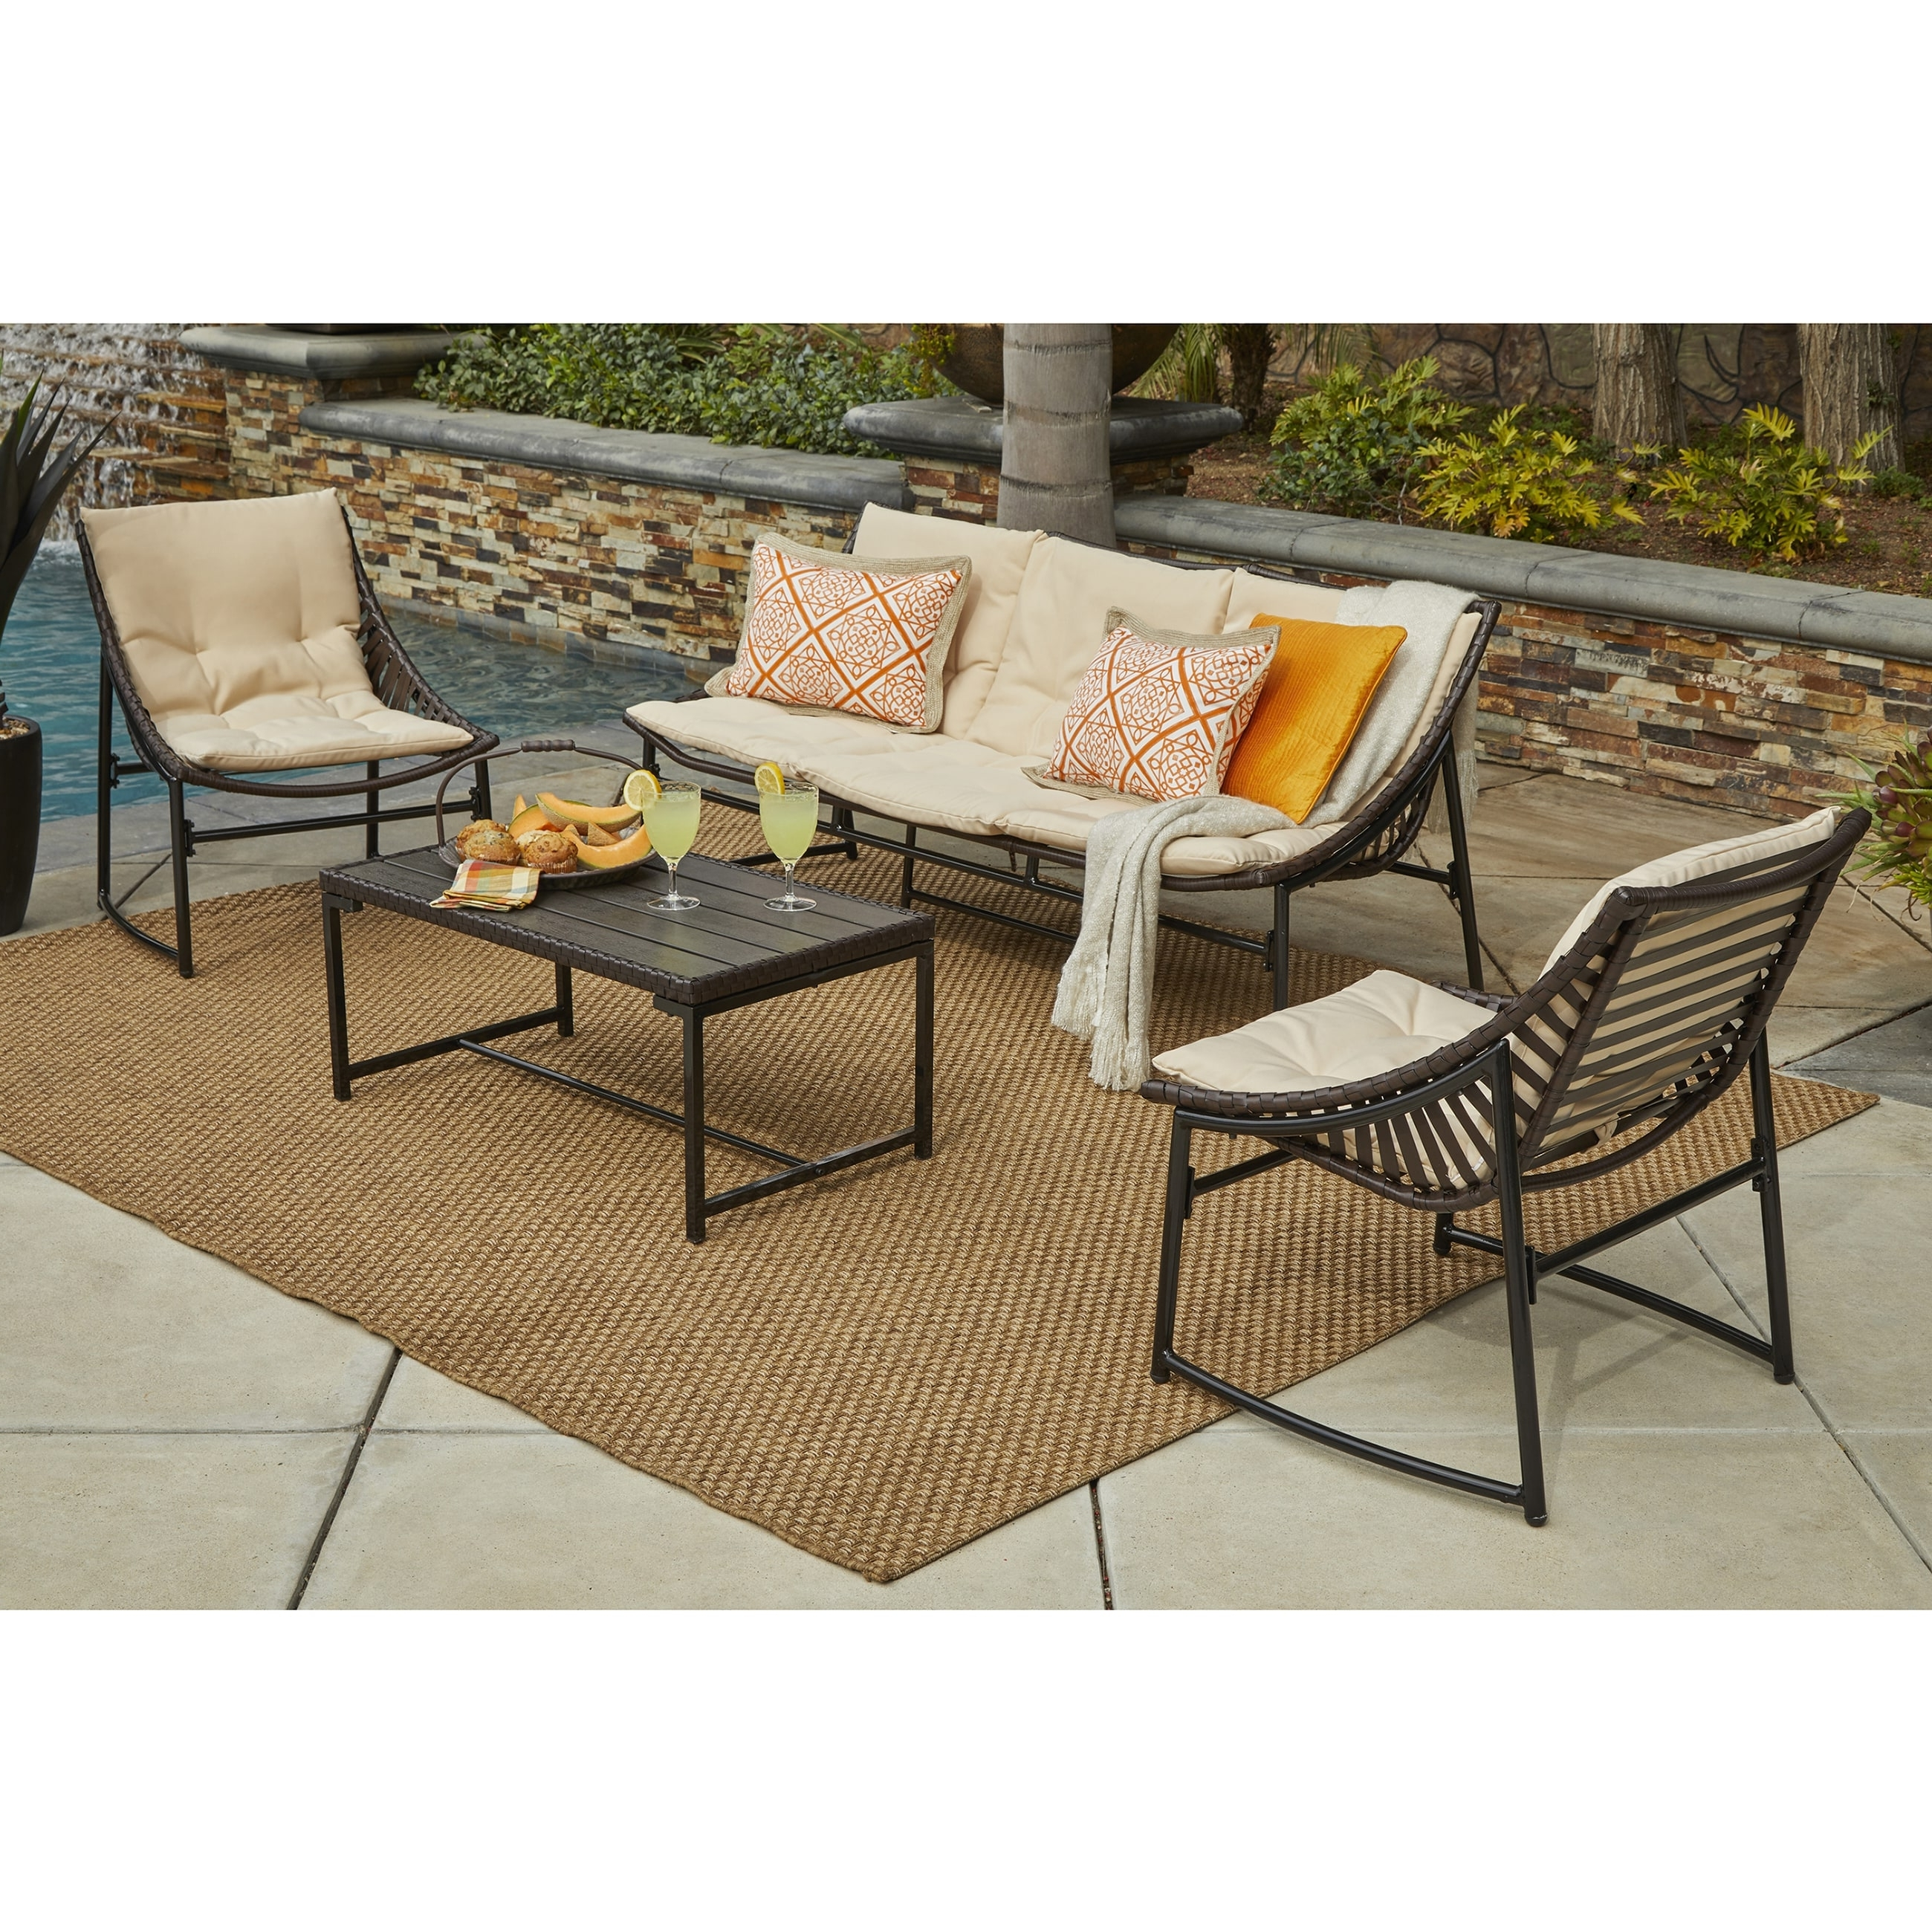 Shop Handy Living Nico 4 Piece Indoor/outdoor Sling Conversation Set Pertaining To Most Up To Date Sling Patio Conversation Sets (View 7 of 15)